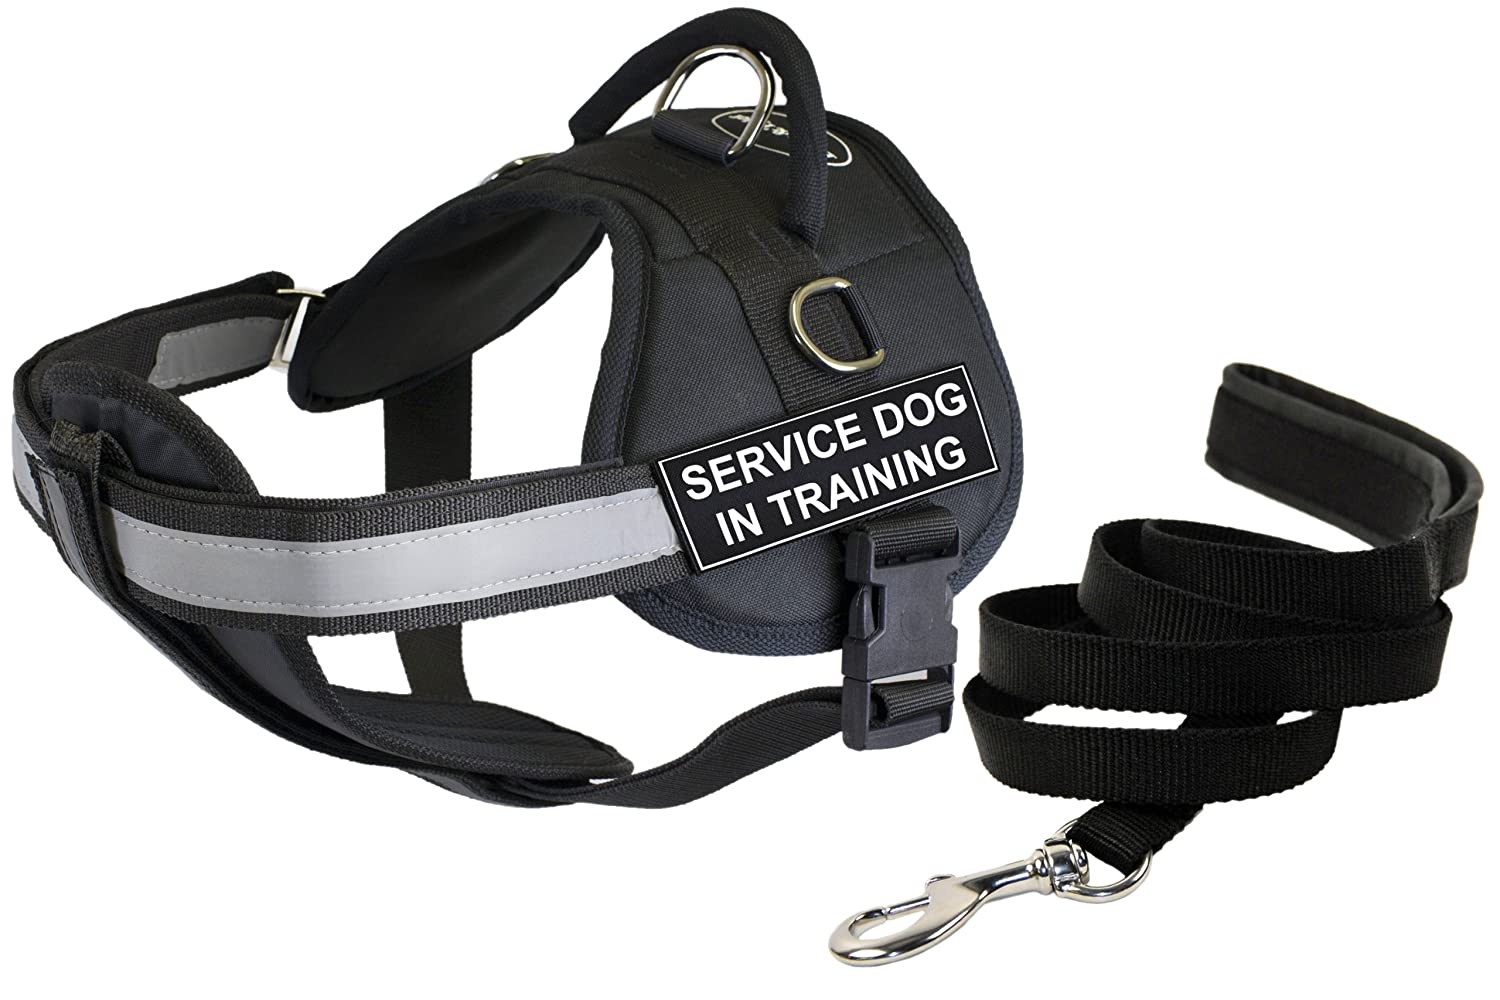 Dean & Tyler 21 by 26-Inch Service Dog in Training Pet Harness with Padded Puppy Leash, X-Small, 6-Feet Stainless Snap